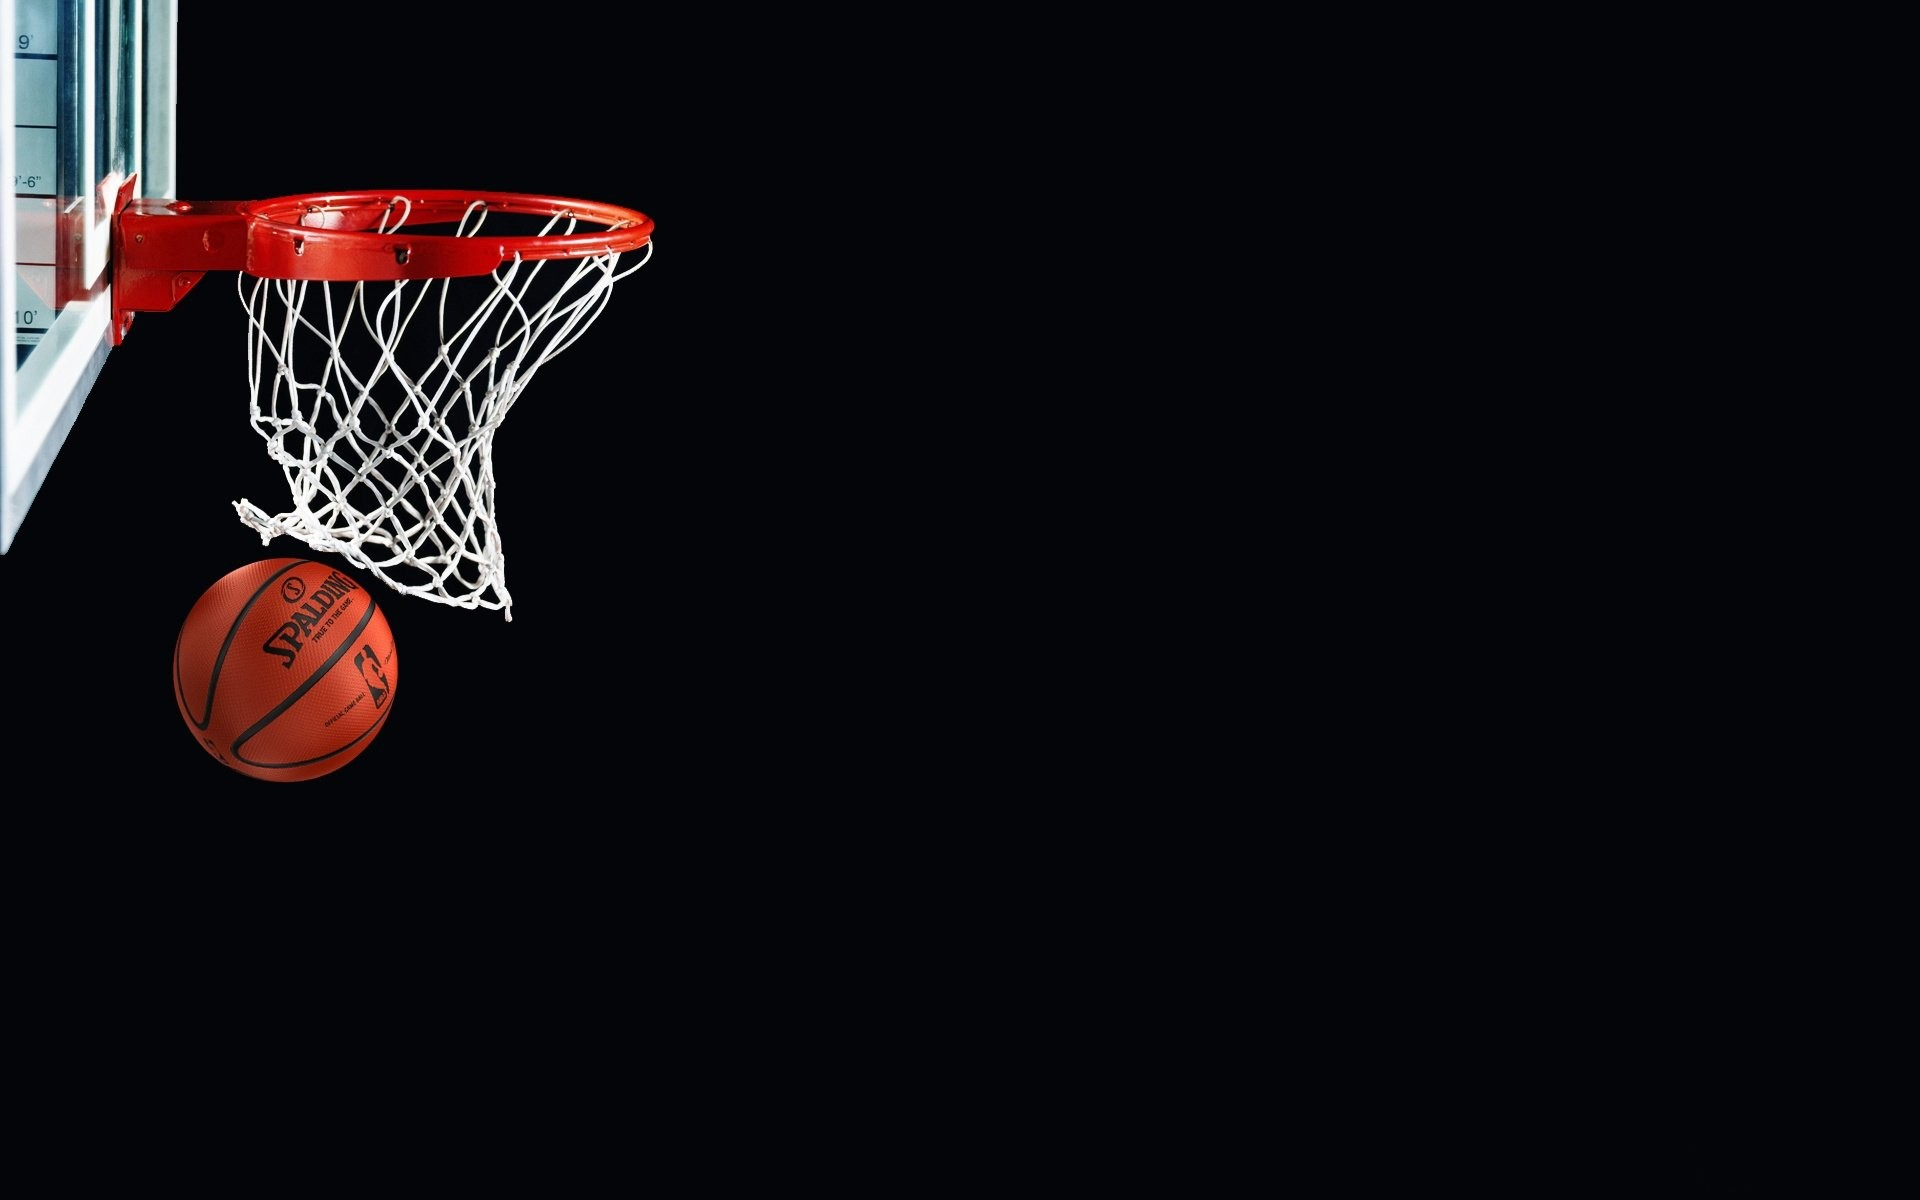 1920x1200 78 Basketball HD Wallpapers | Backgrounds - Wallpaper Abyss